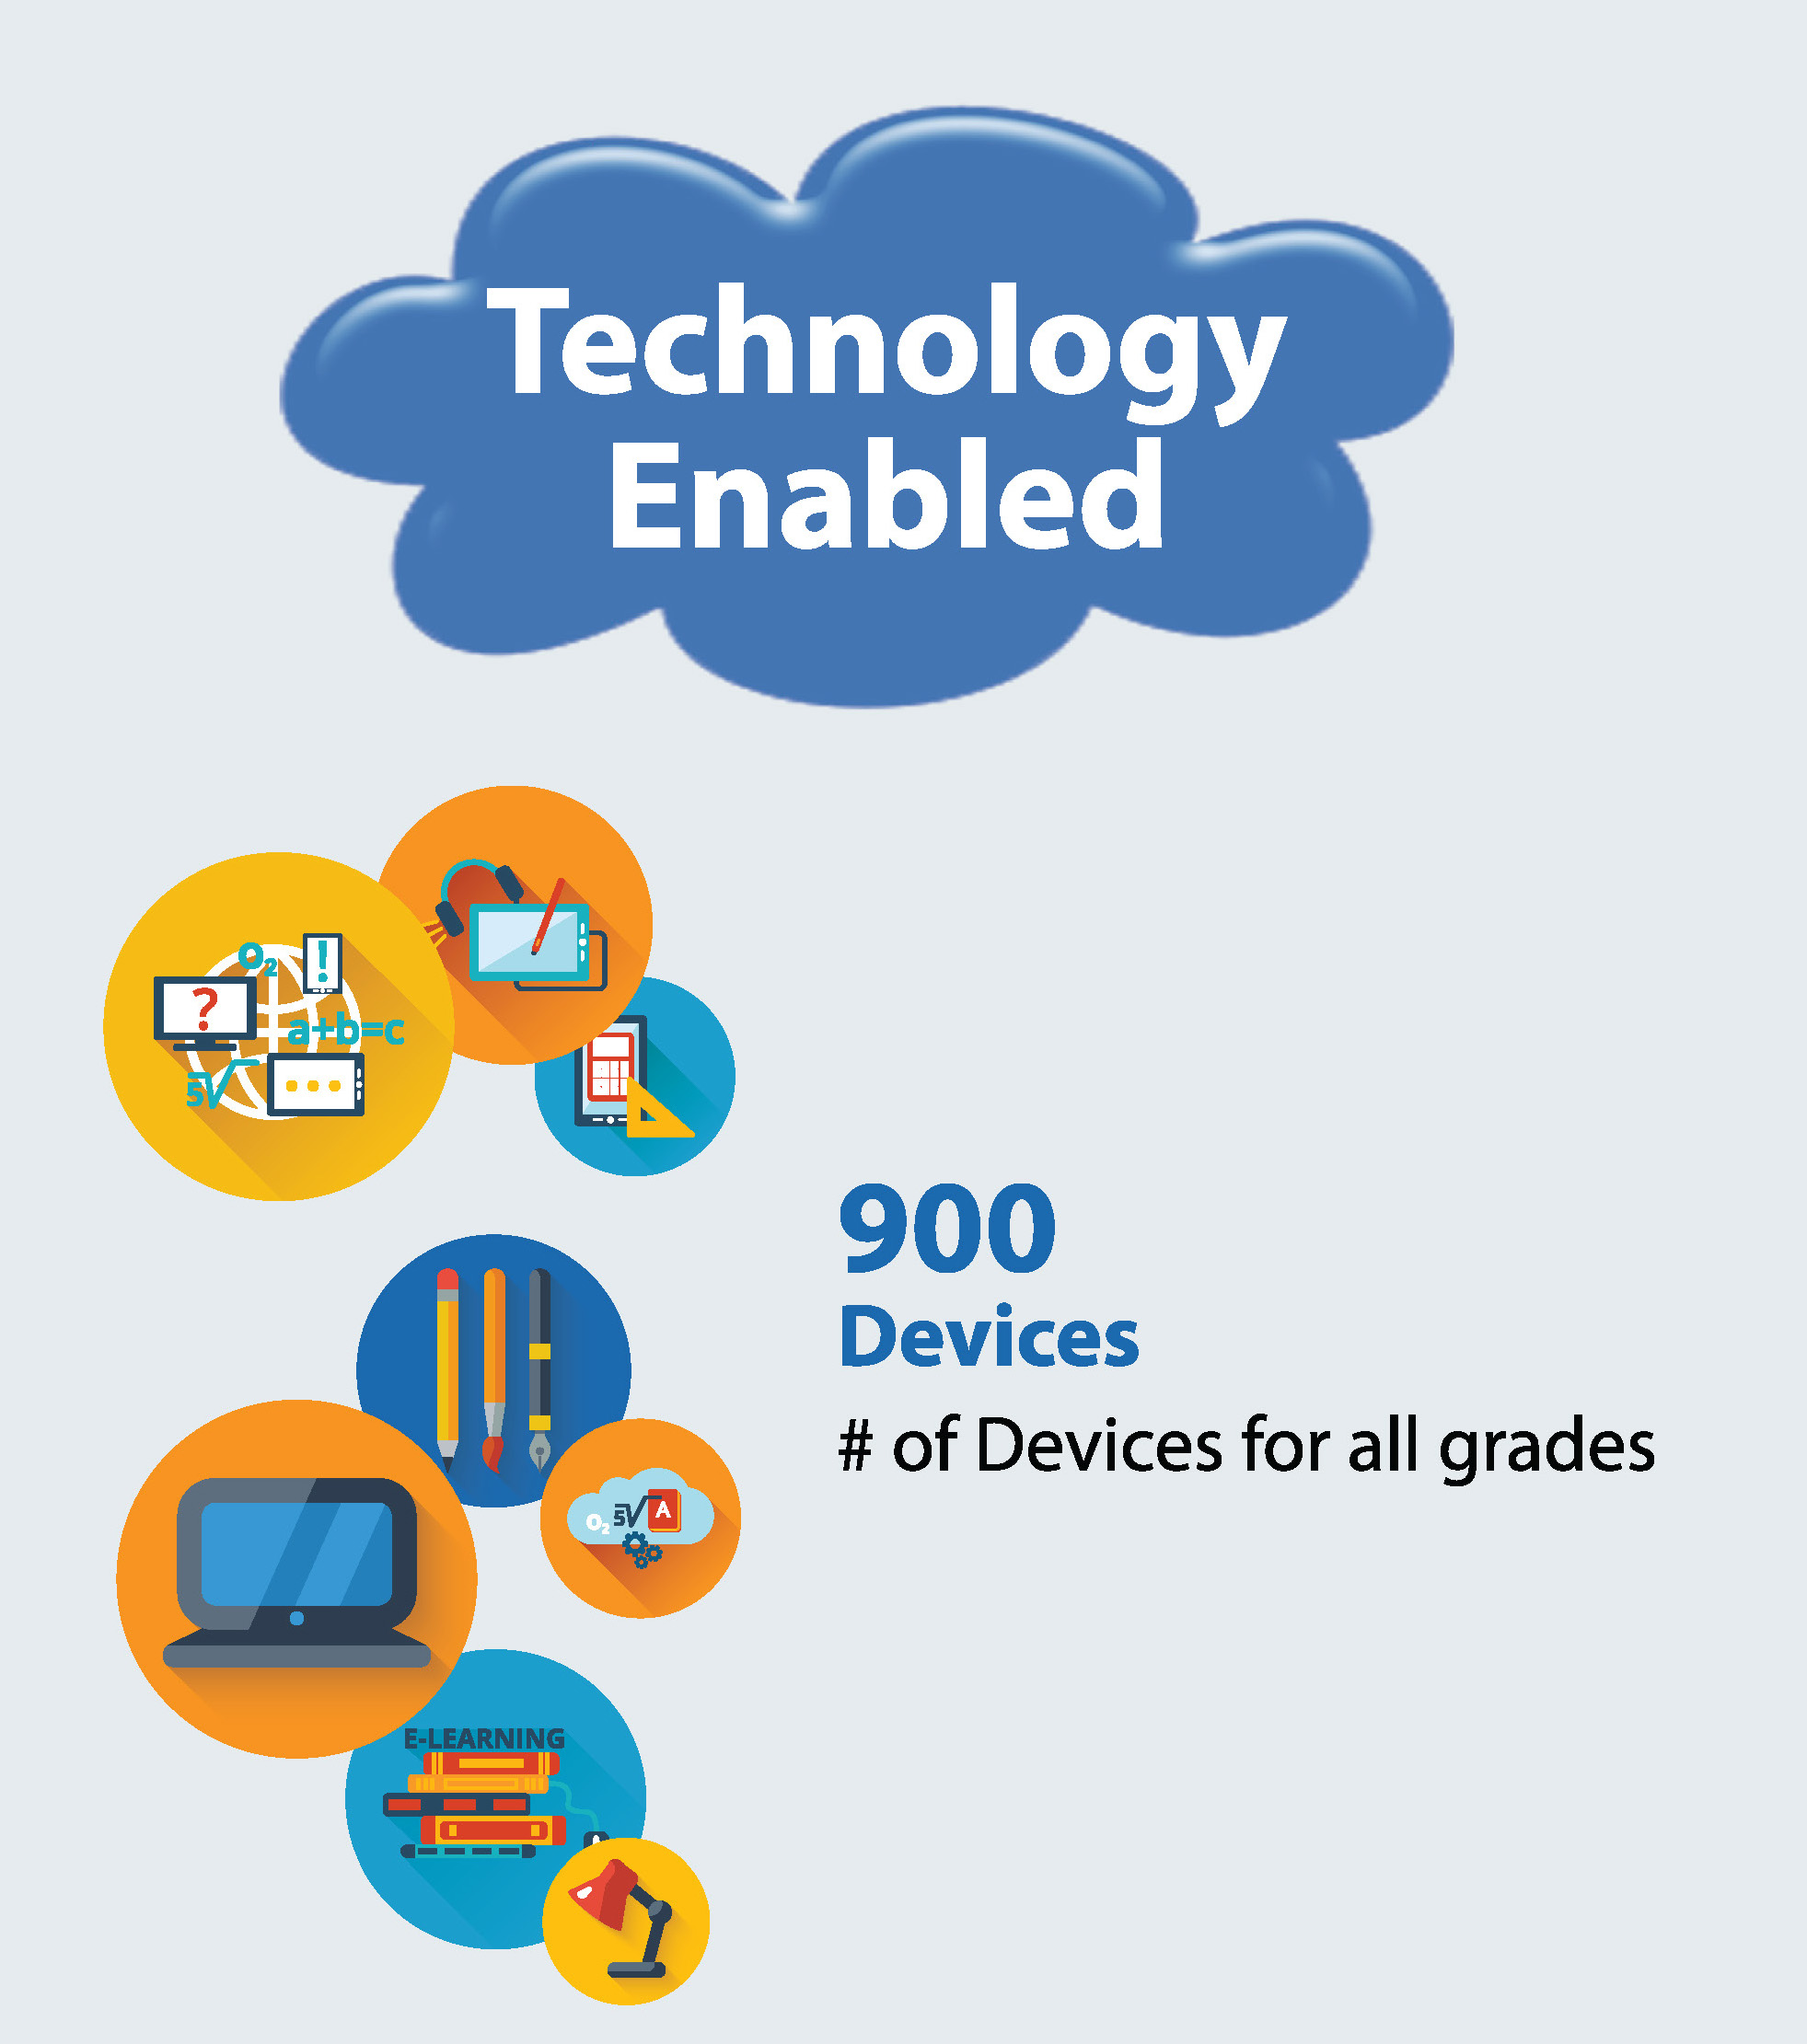 OFMS LOCAL SCORECARD - TECHNOLOGY ENABLED